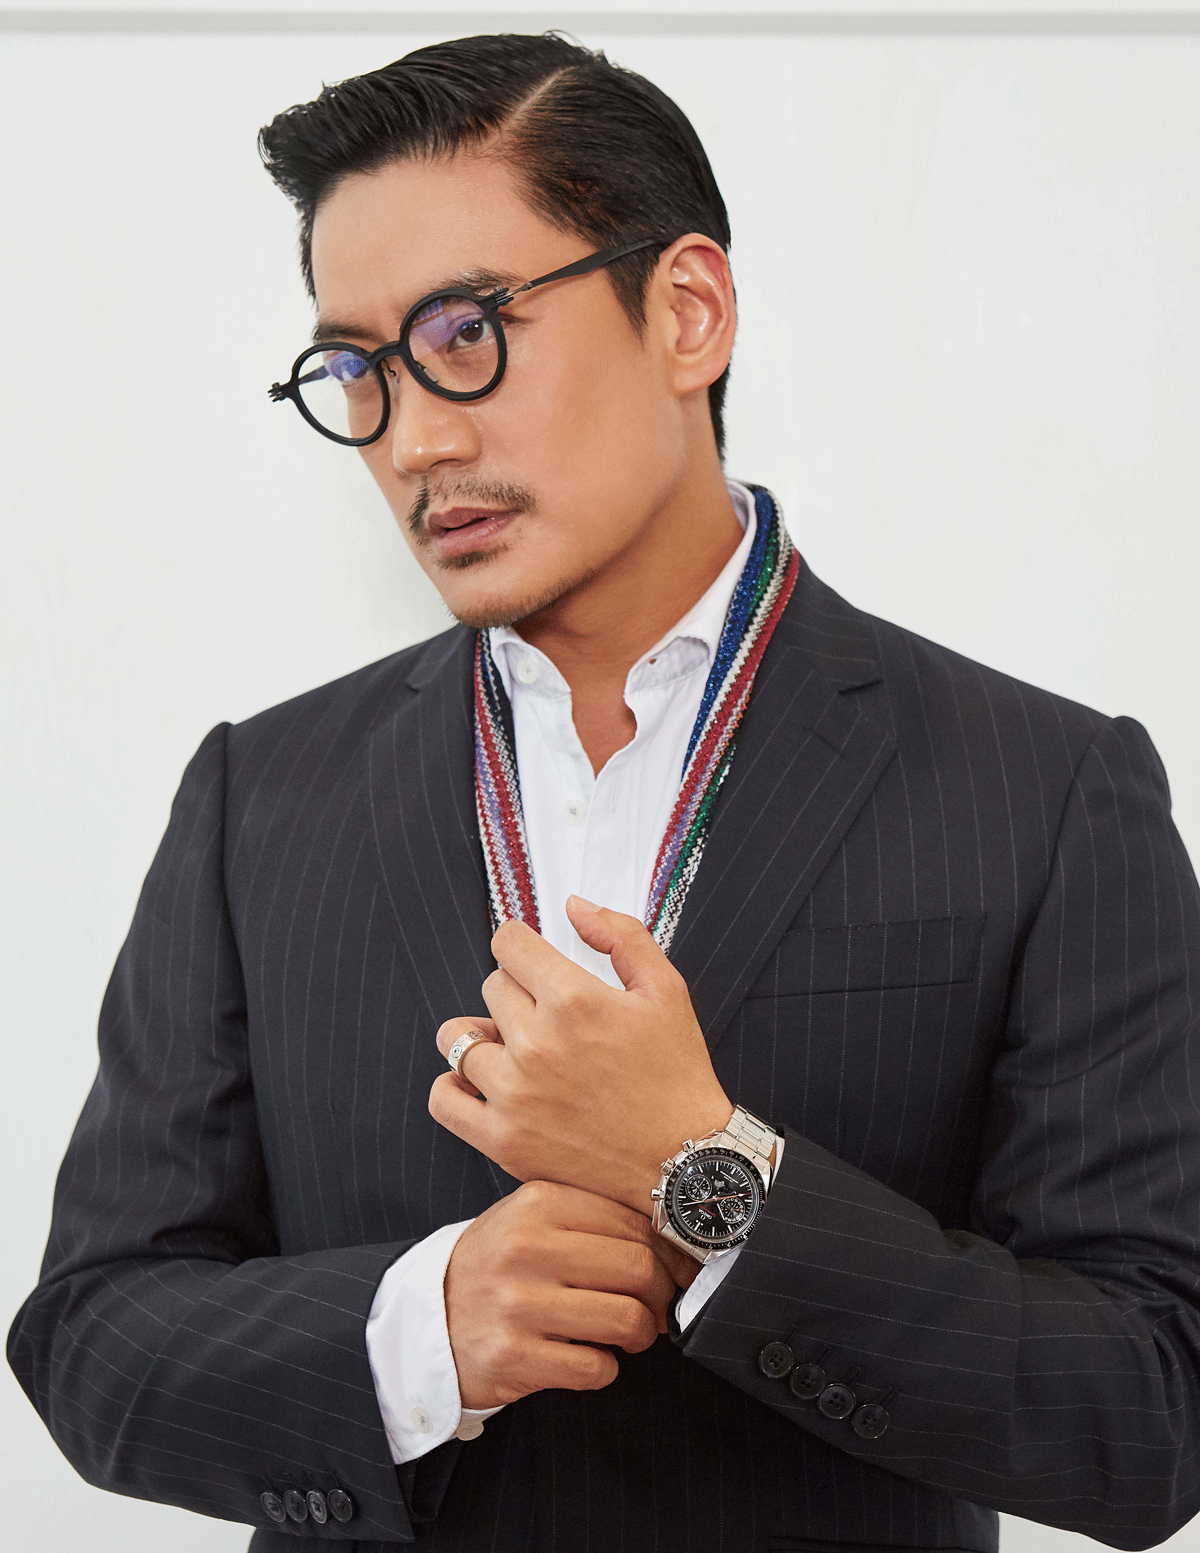 OAK : clothes : HACKETT London / eyeglasses : TAVAT eyewear / scarf : MISSONI  watch : OMEGA Speedmaster Moonwatch Moonphase Chronograph 44.25 mm